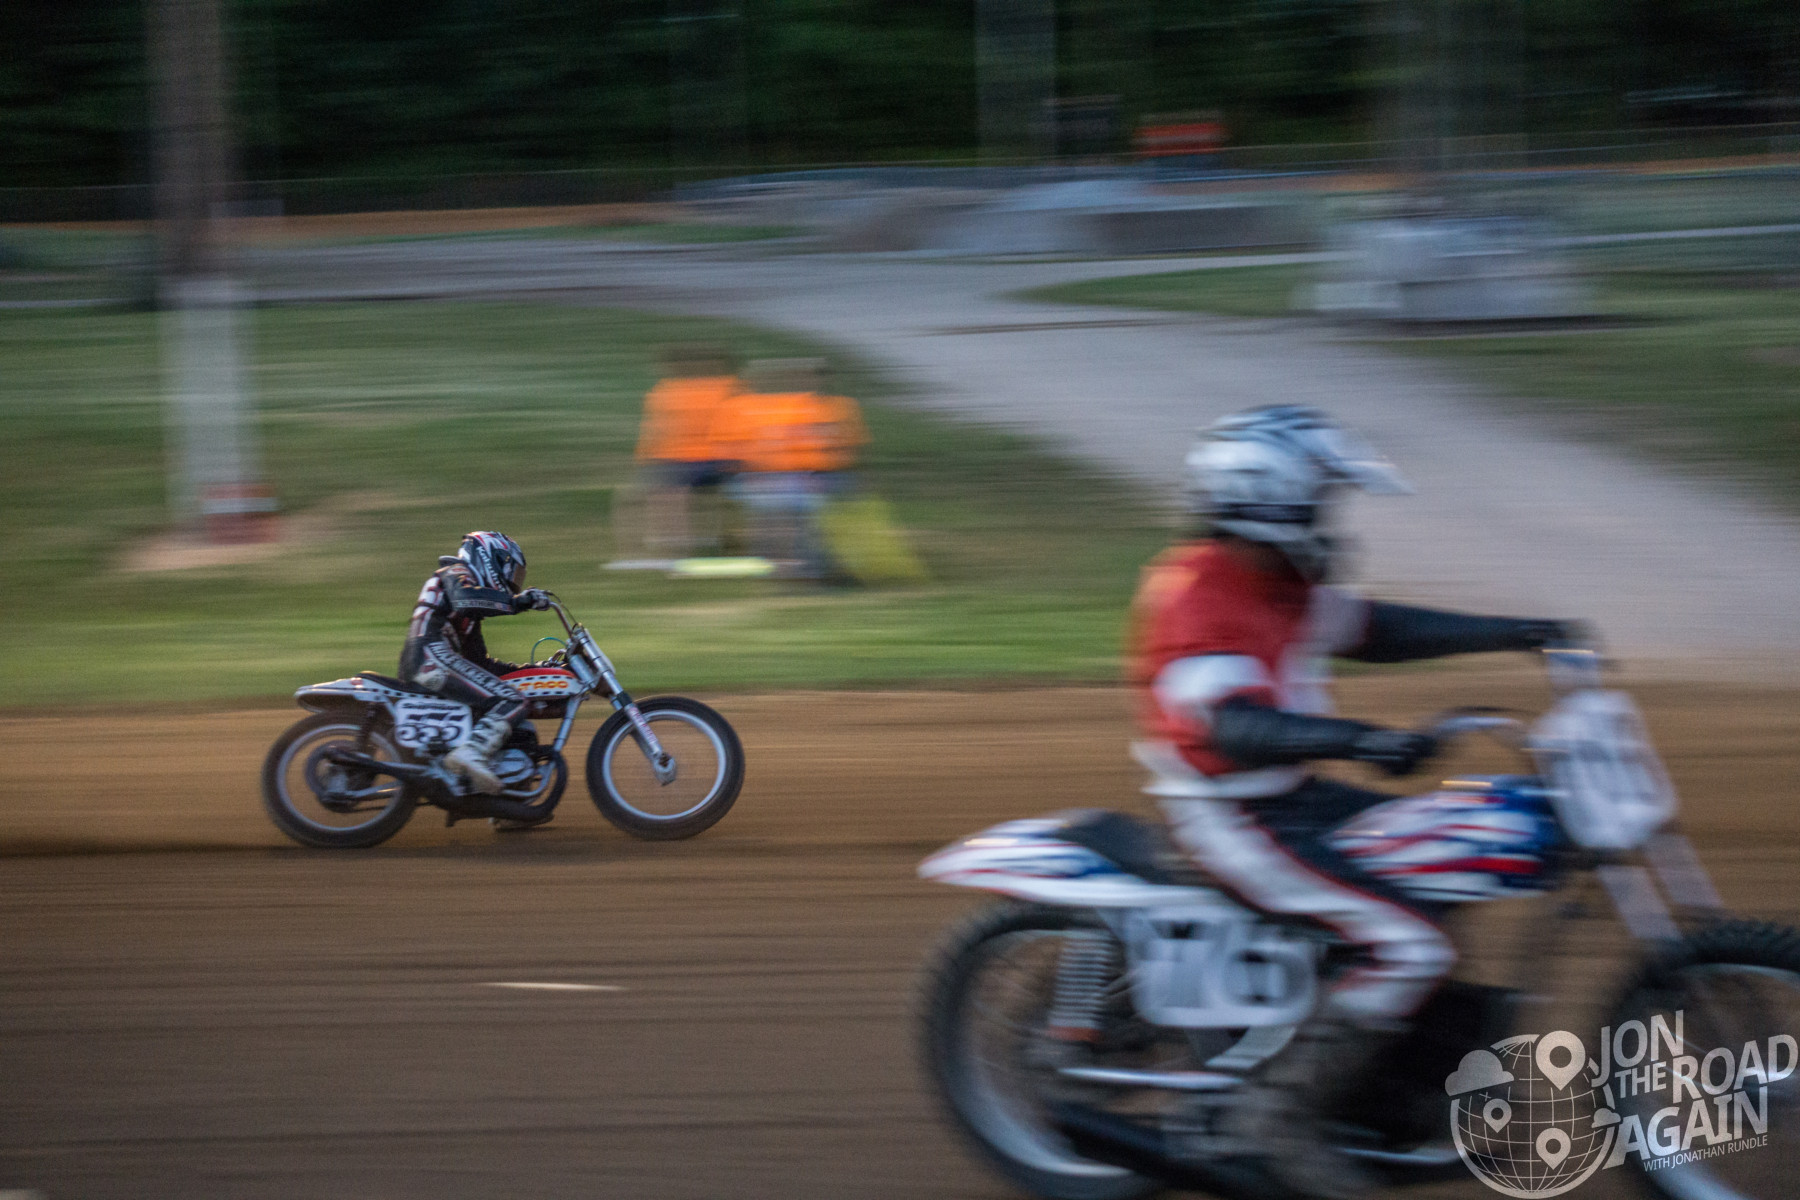 Flat track motorcycle racing at Ashland fairgrounds during AMA Vintage Motorcycle Days